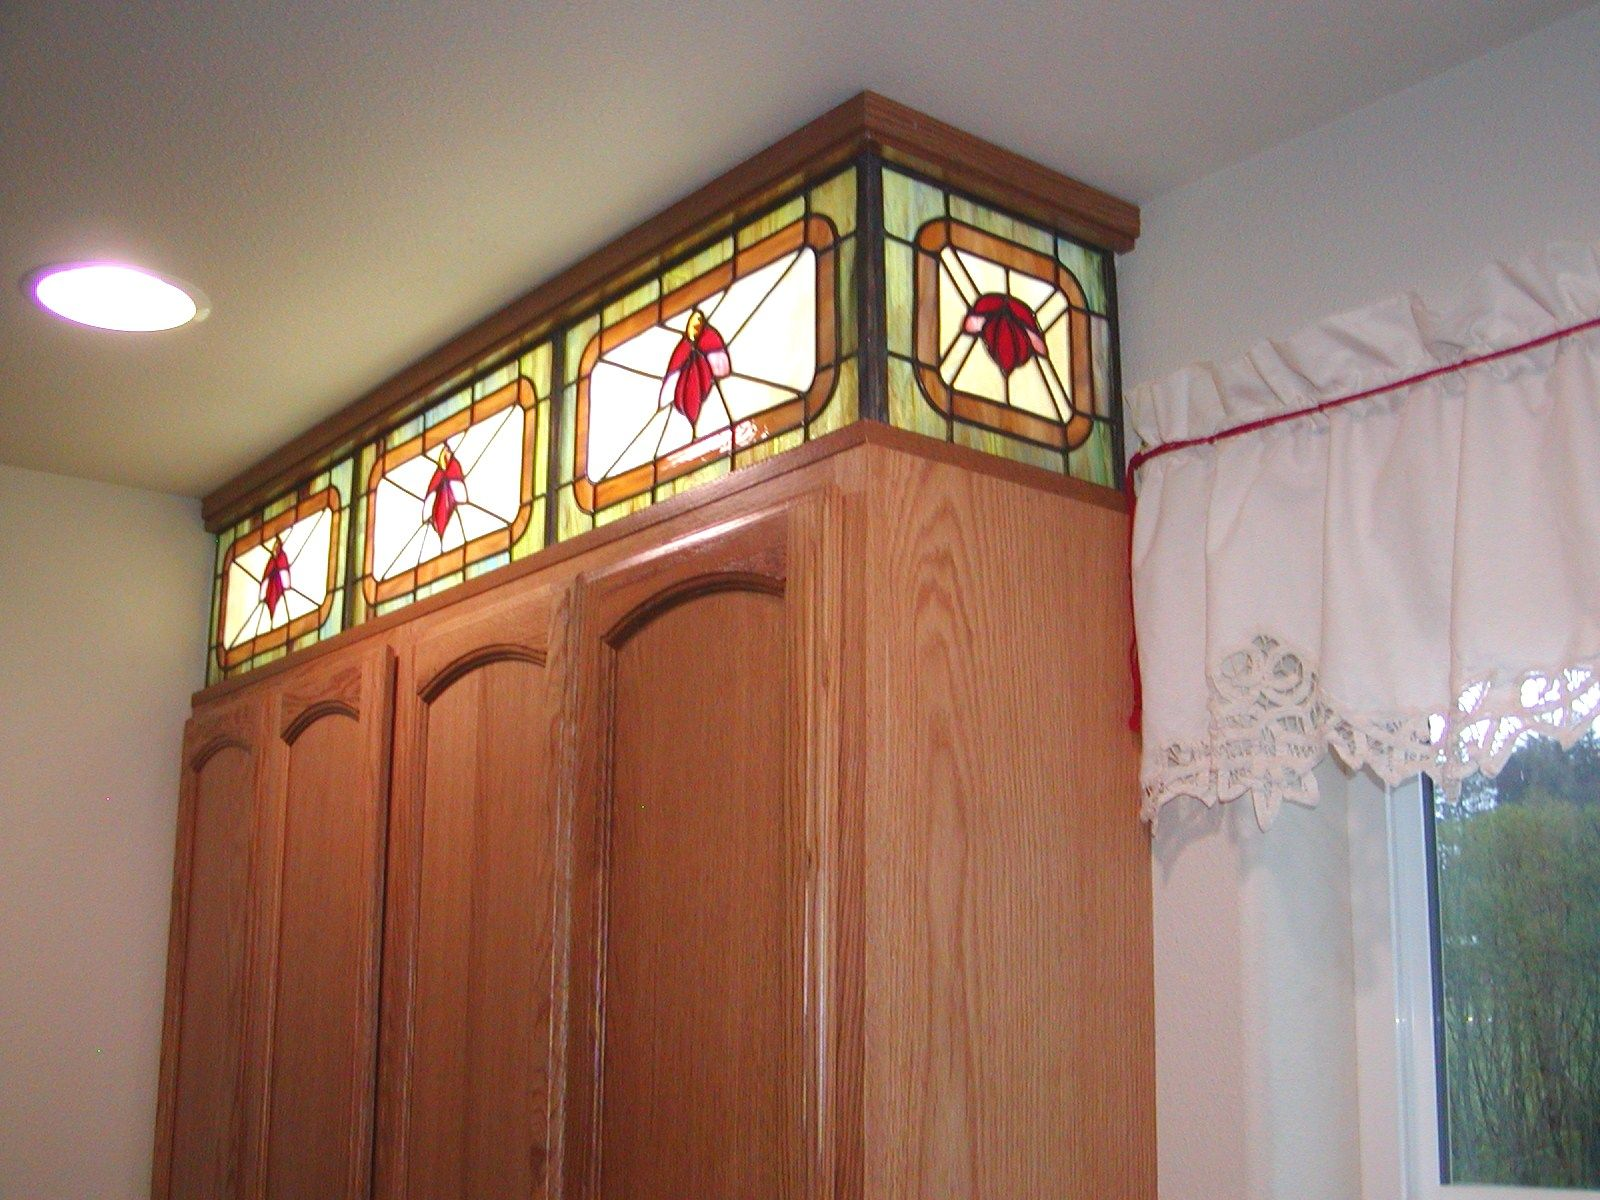 Stained Gl Above Kitchen Cabinet Panel This View Shows One Of